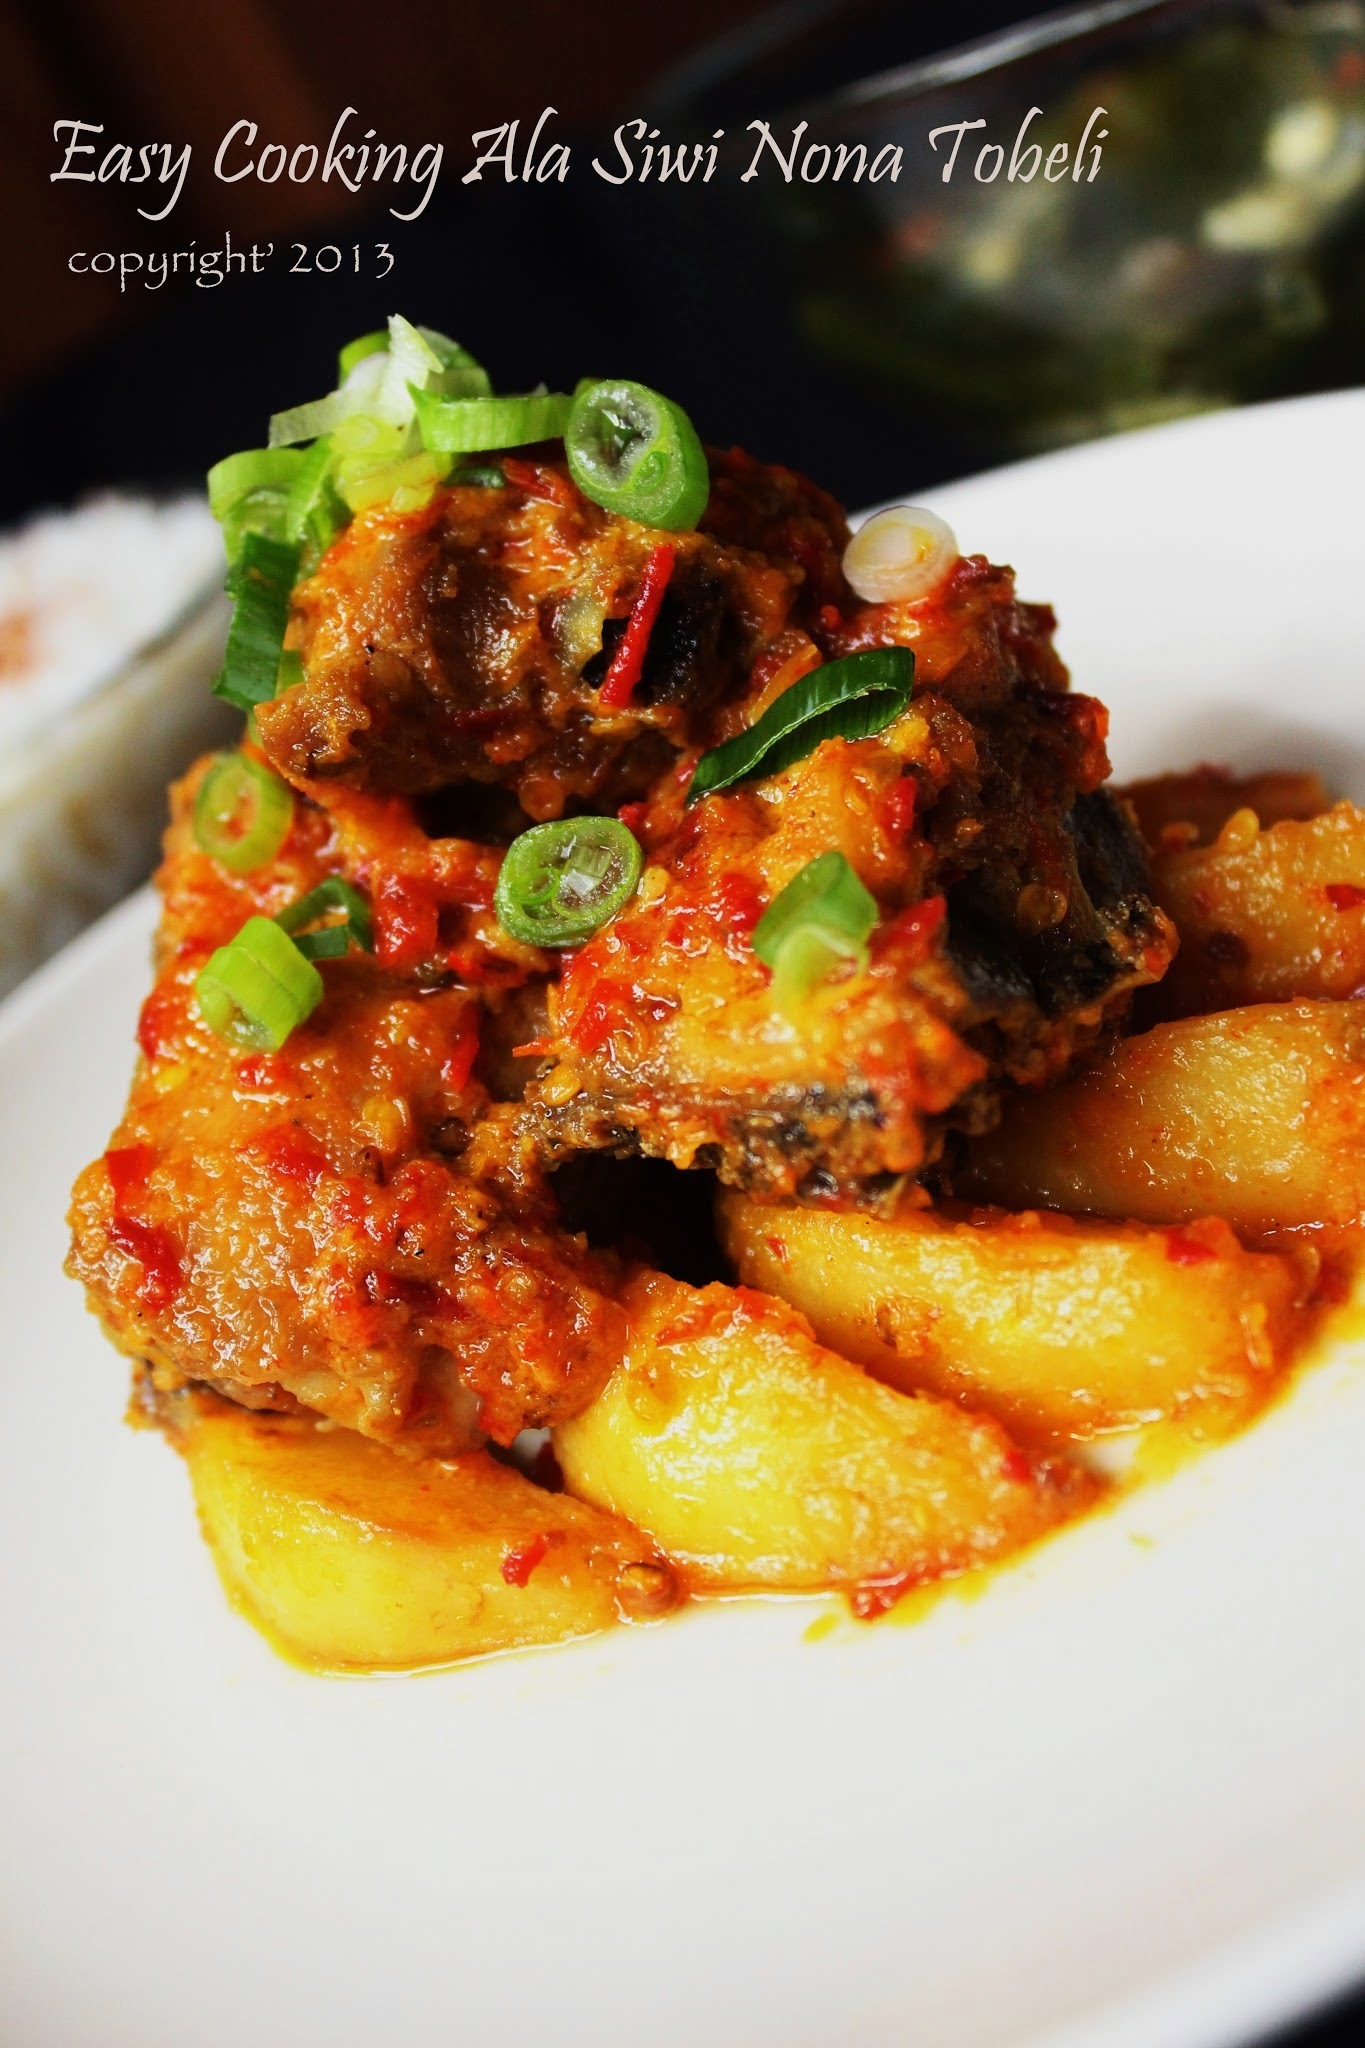 ayam bumbu rujak - chicken with fresh chili sauce